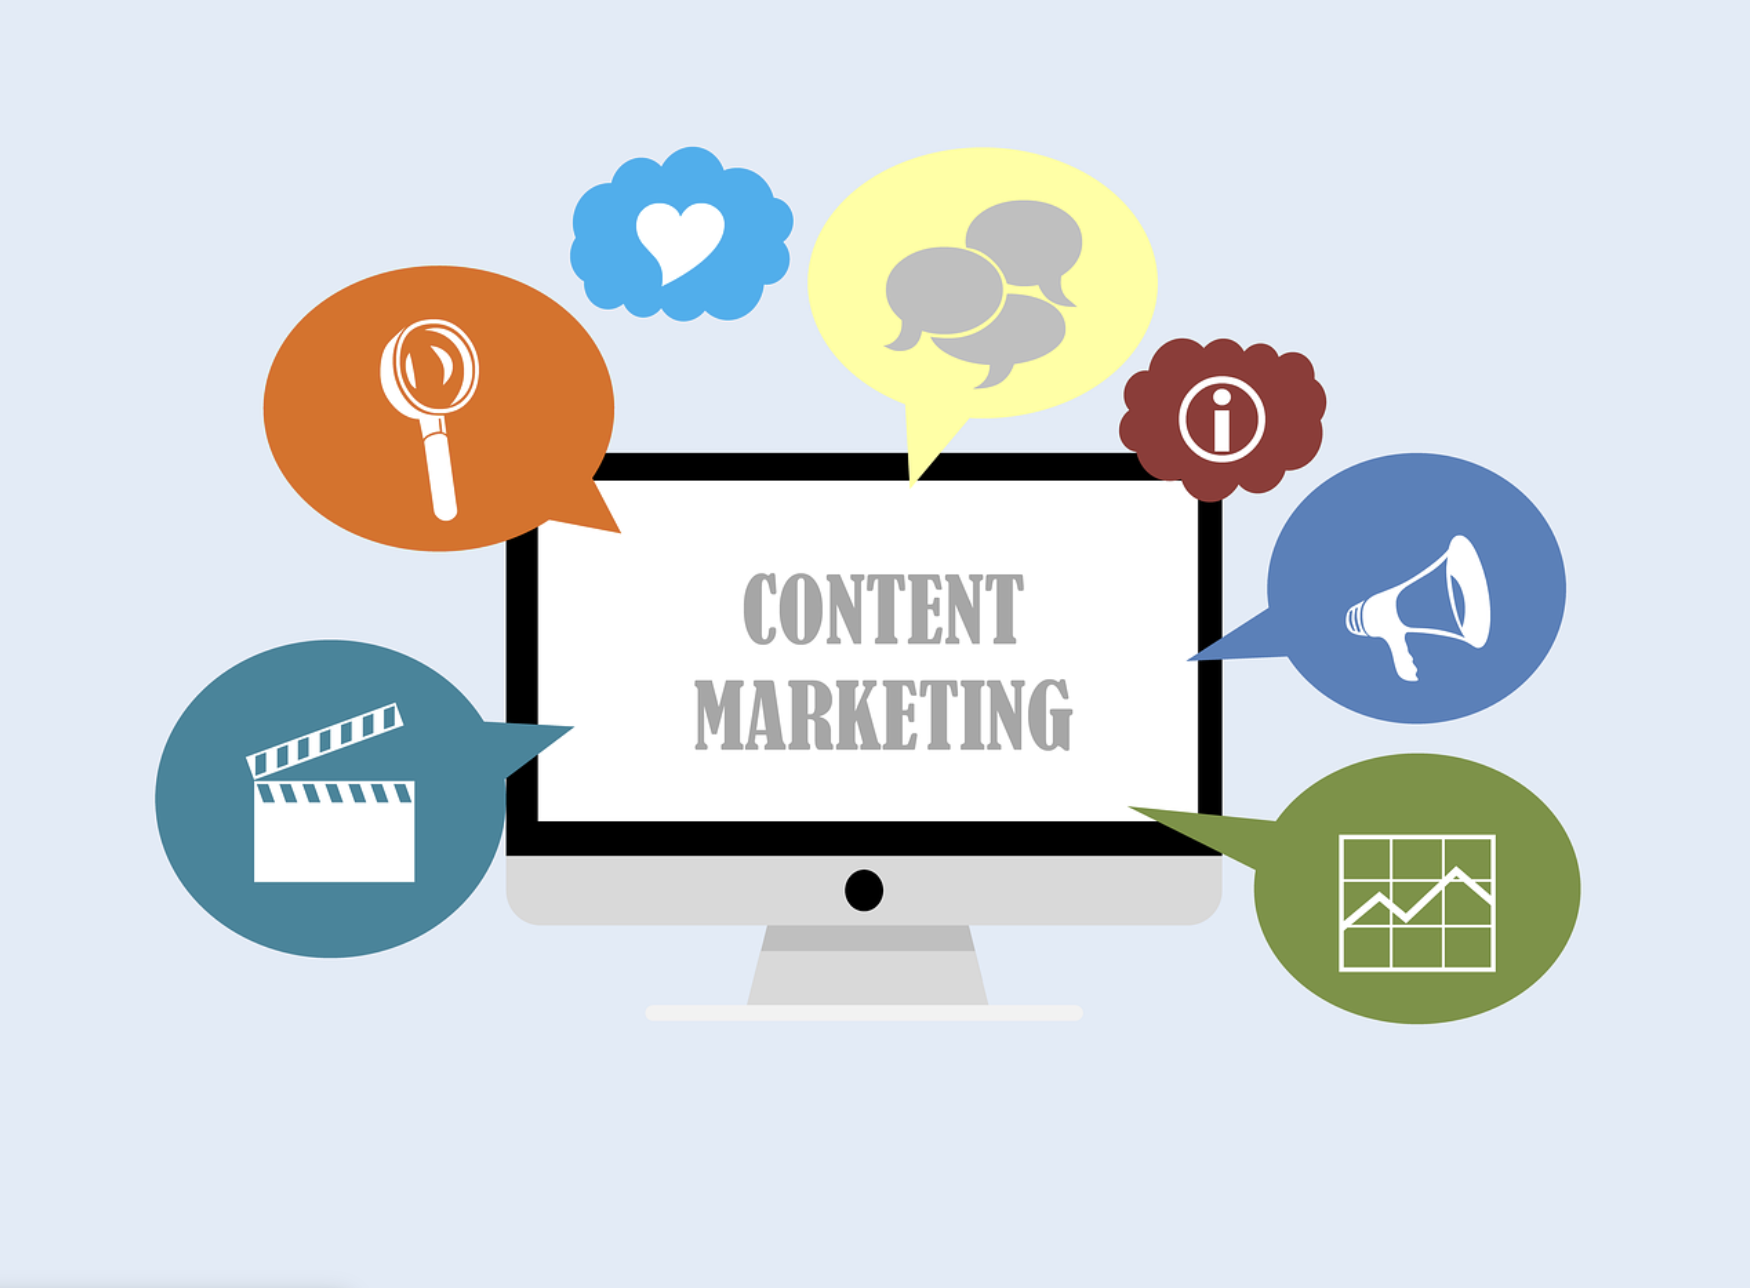 How Content Marketing Has Gone From Nonexistent to Prevalent